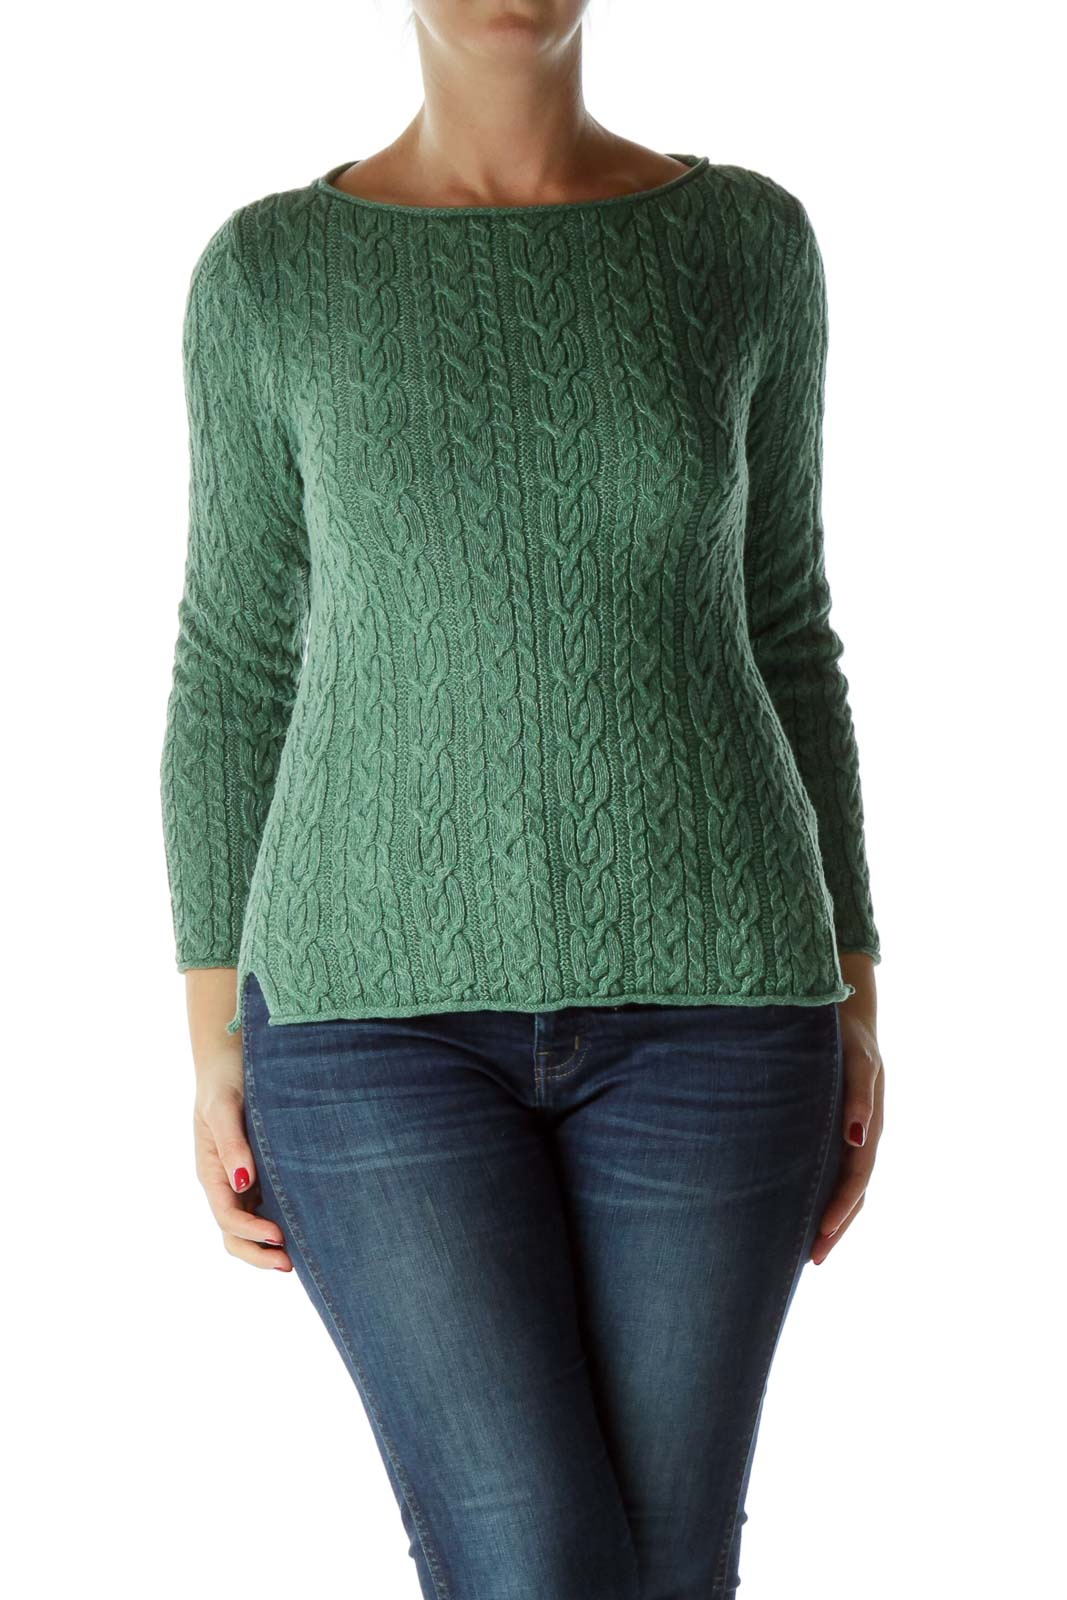 Green White Cable Knit Fitted Sweater